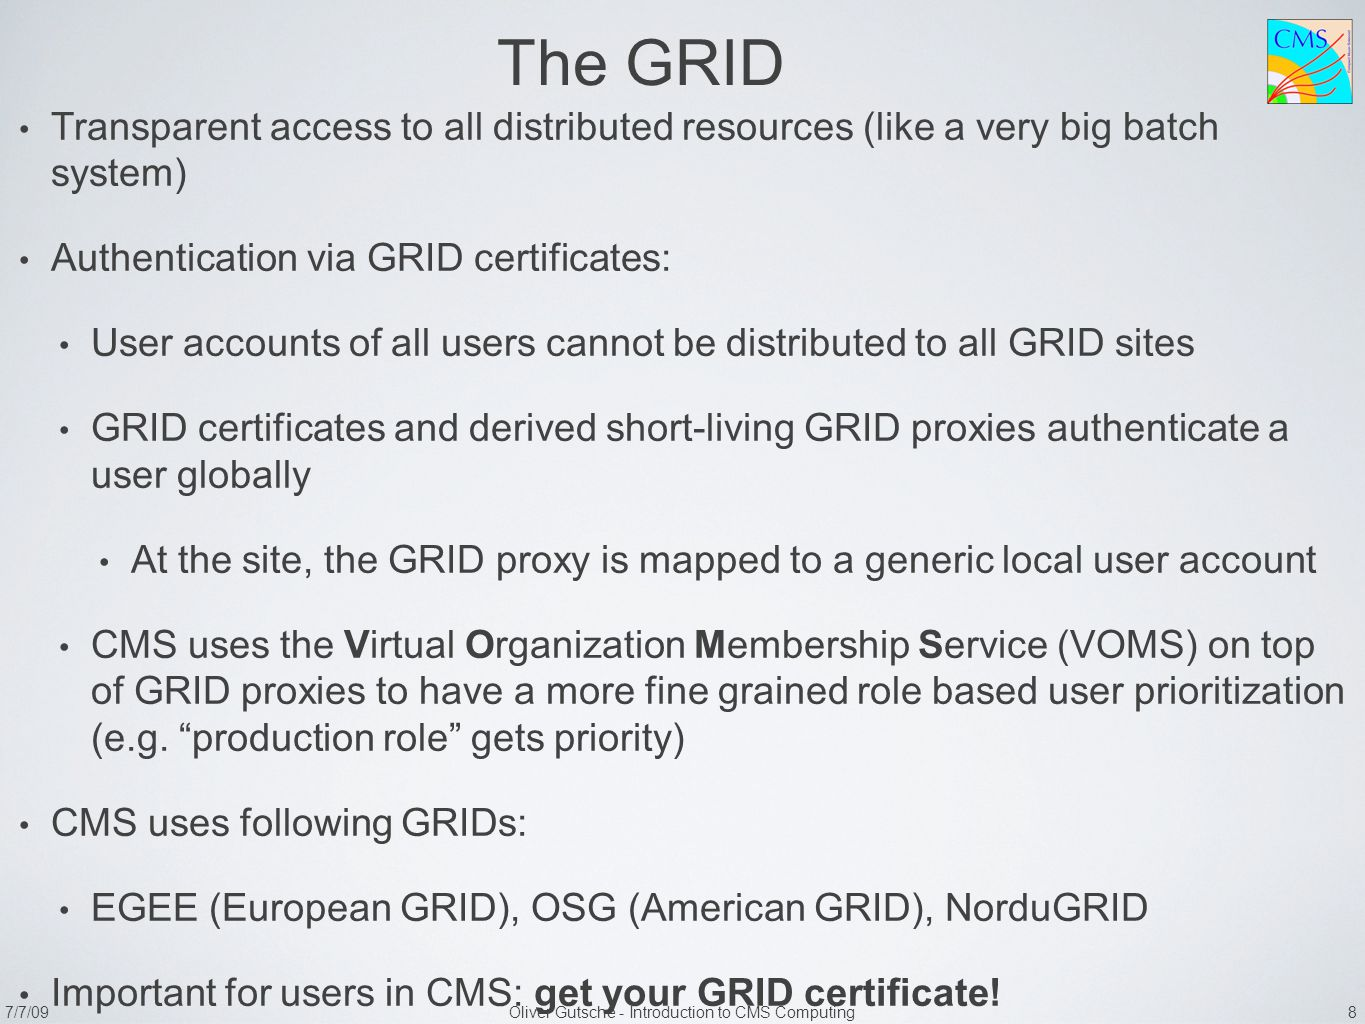 7/7/09Oliver Gutsche - Introduction to CMS Computing 8 The GRID Transparent access to all distributed resources (like a very big batch system) Authentication via GRID certificates: User accounts of all users cannot be distributed to all GRID sites GRID certificates and derived short-living GRID proxies authenticate a user globally At the site, the GRID proxy is mapped to a generic local user account CMS uses the Virtual Organization Membership Service (VOMS) on top of GRID proxies to have a more fine grained role based user prioritization (e.g.